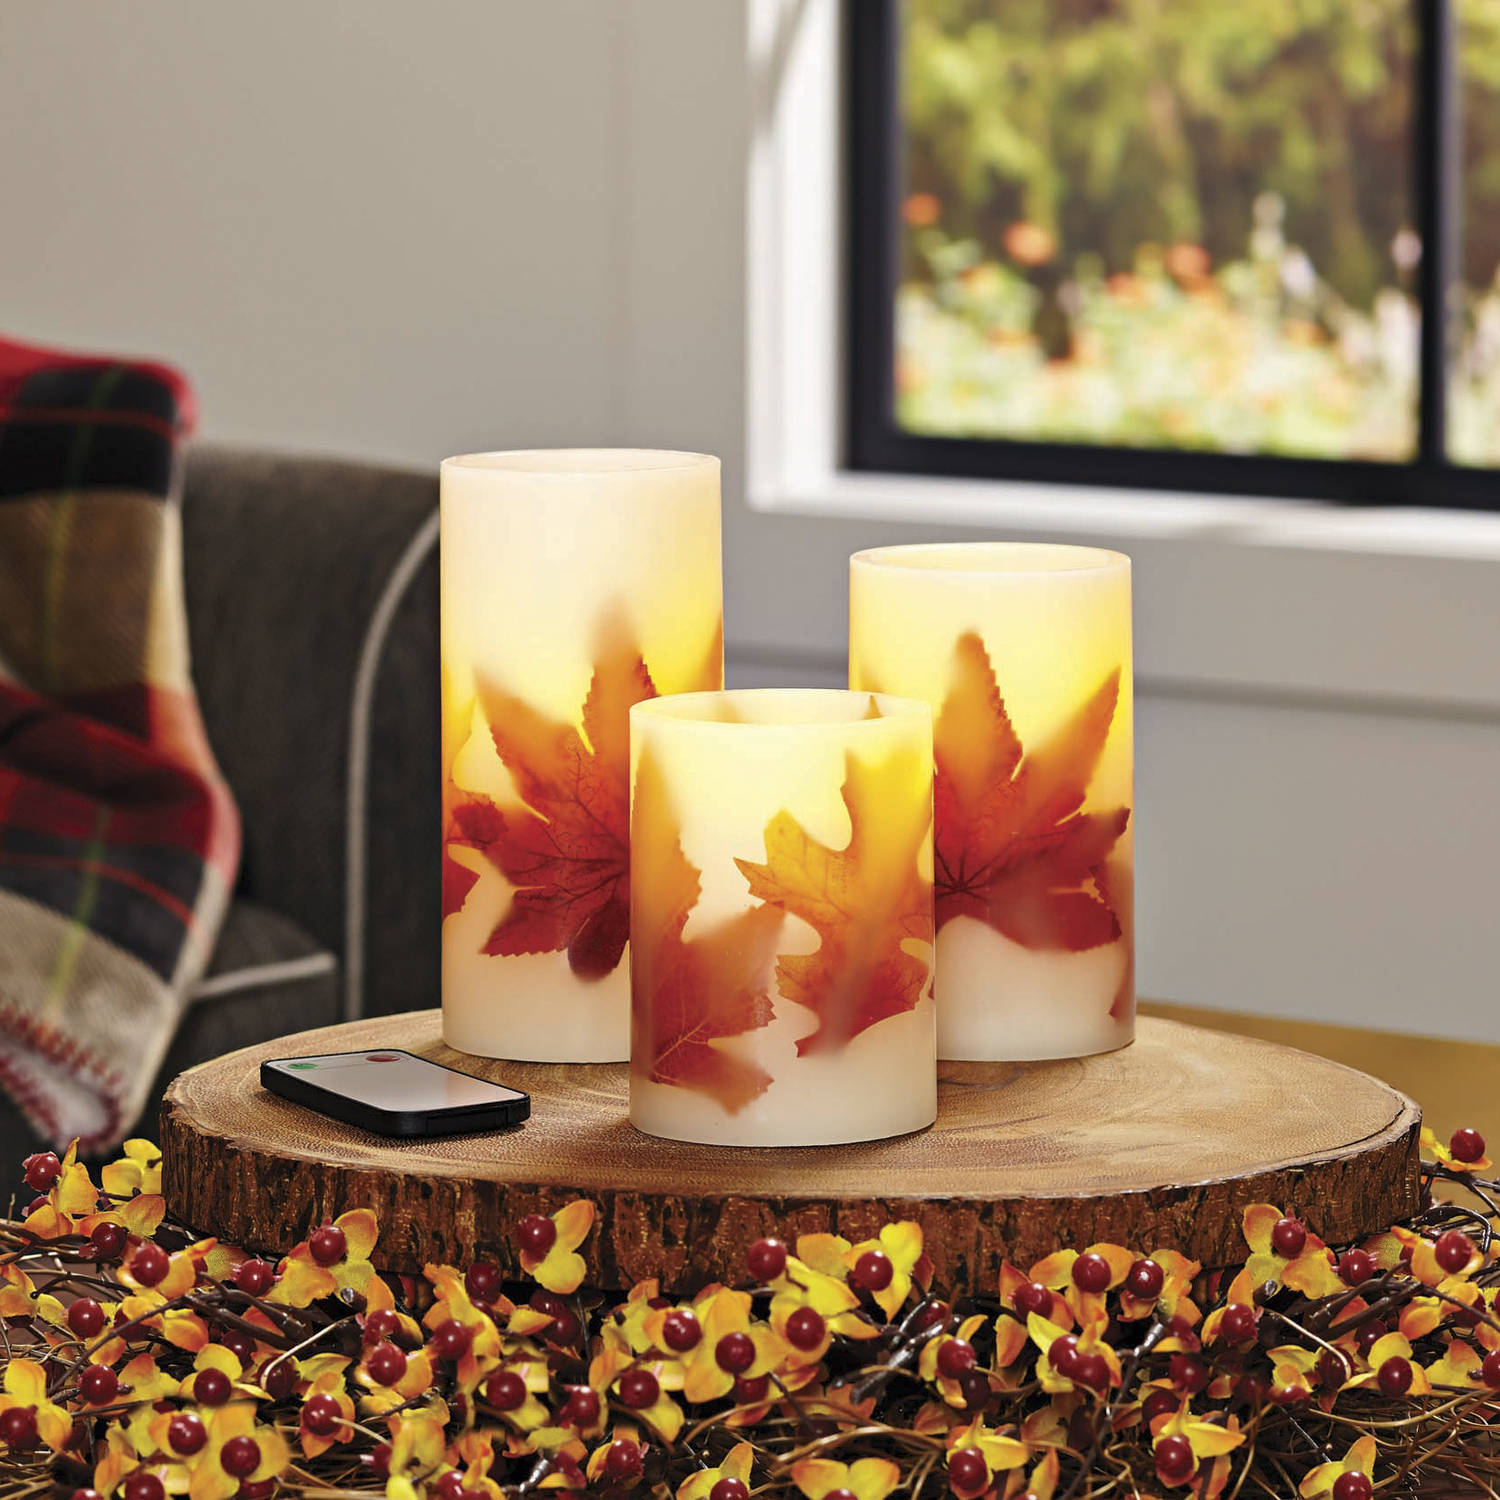 Better Homes and Gardens 3-Pack LED Pillar Candles, Leaves